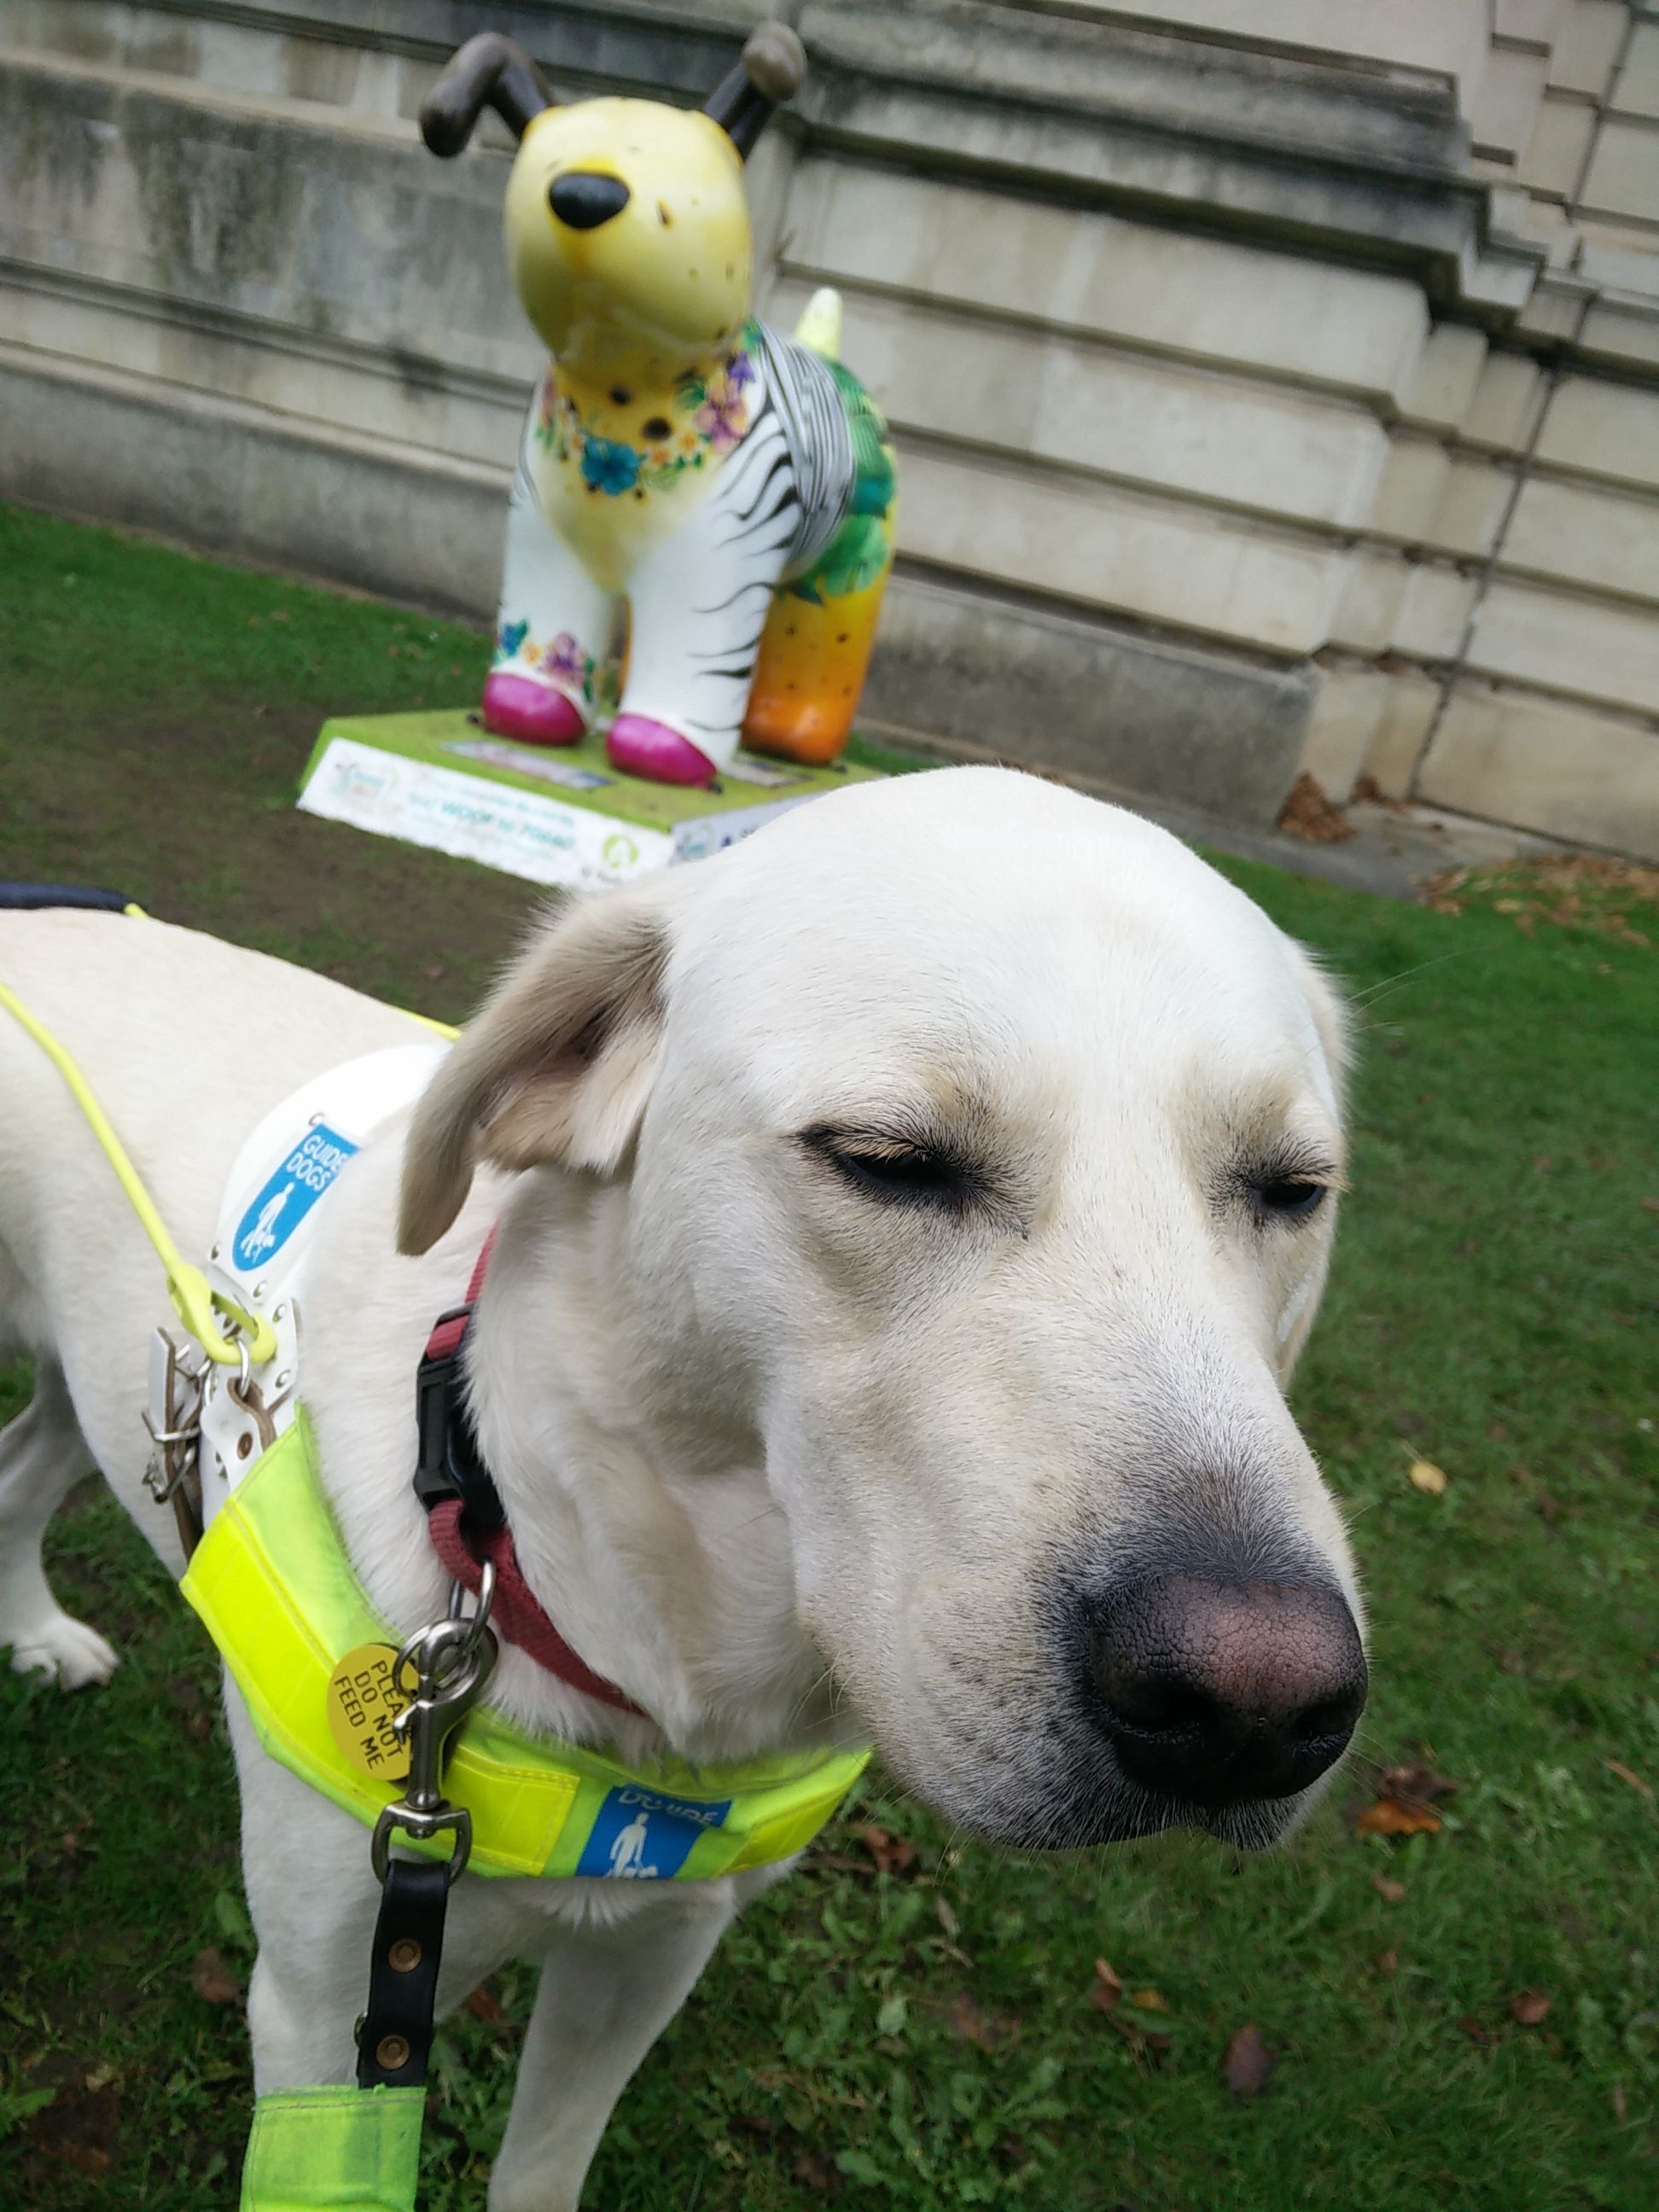 Guide Dog Uri with a Snowdog in the background, outside National Museum Cardiff